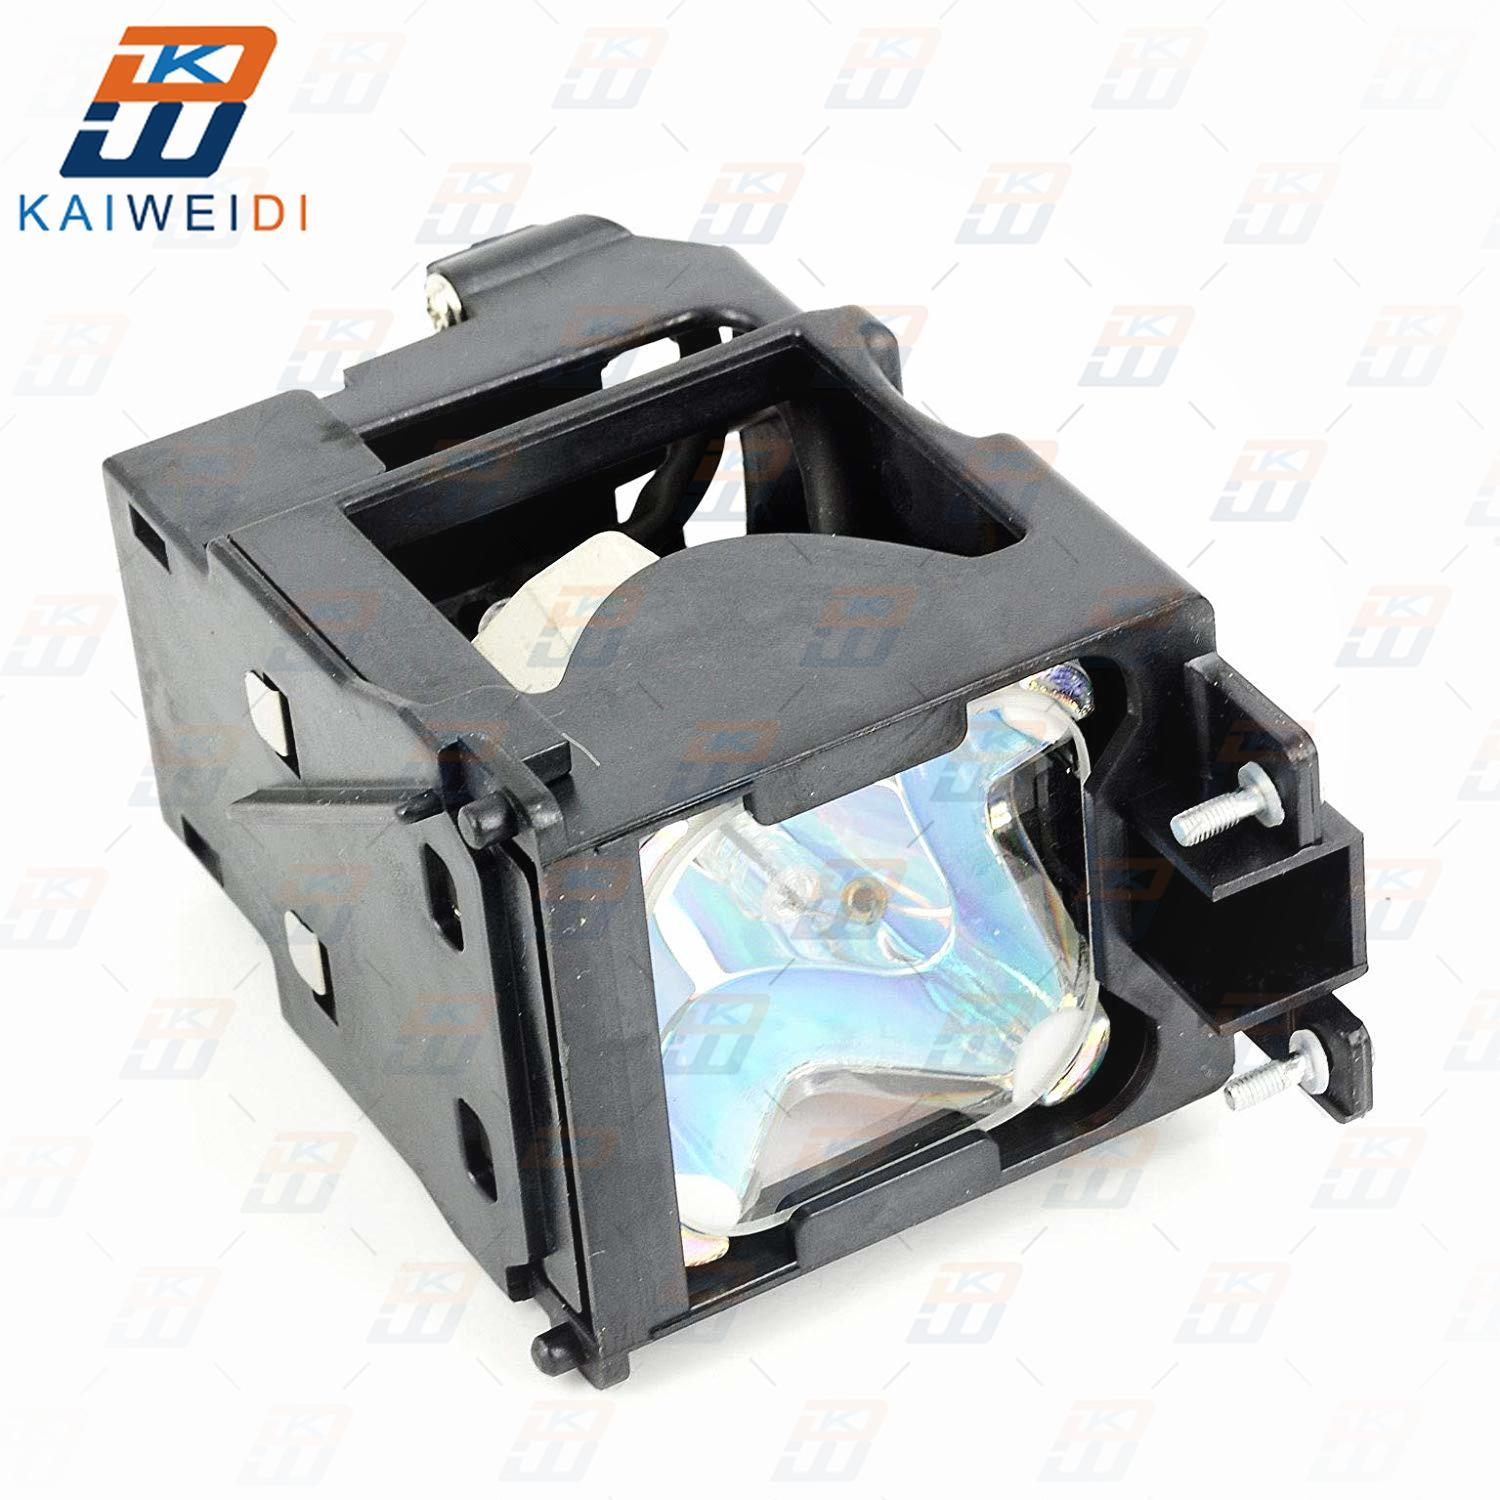 ET-LAC75 Projector Lamp Bulb For PANASONIC PT-LC55U / PT-LC75E / PT-LC75U / PT-U1S65 / PT-U1X65 / TH-LC75 /PT-LC55E With Hosuing